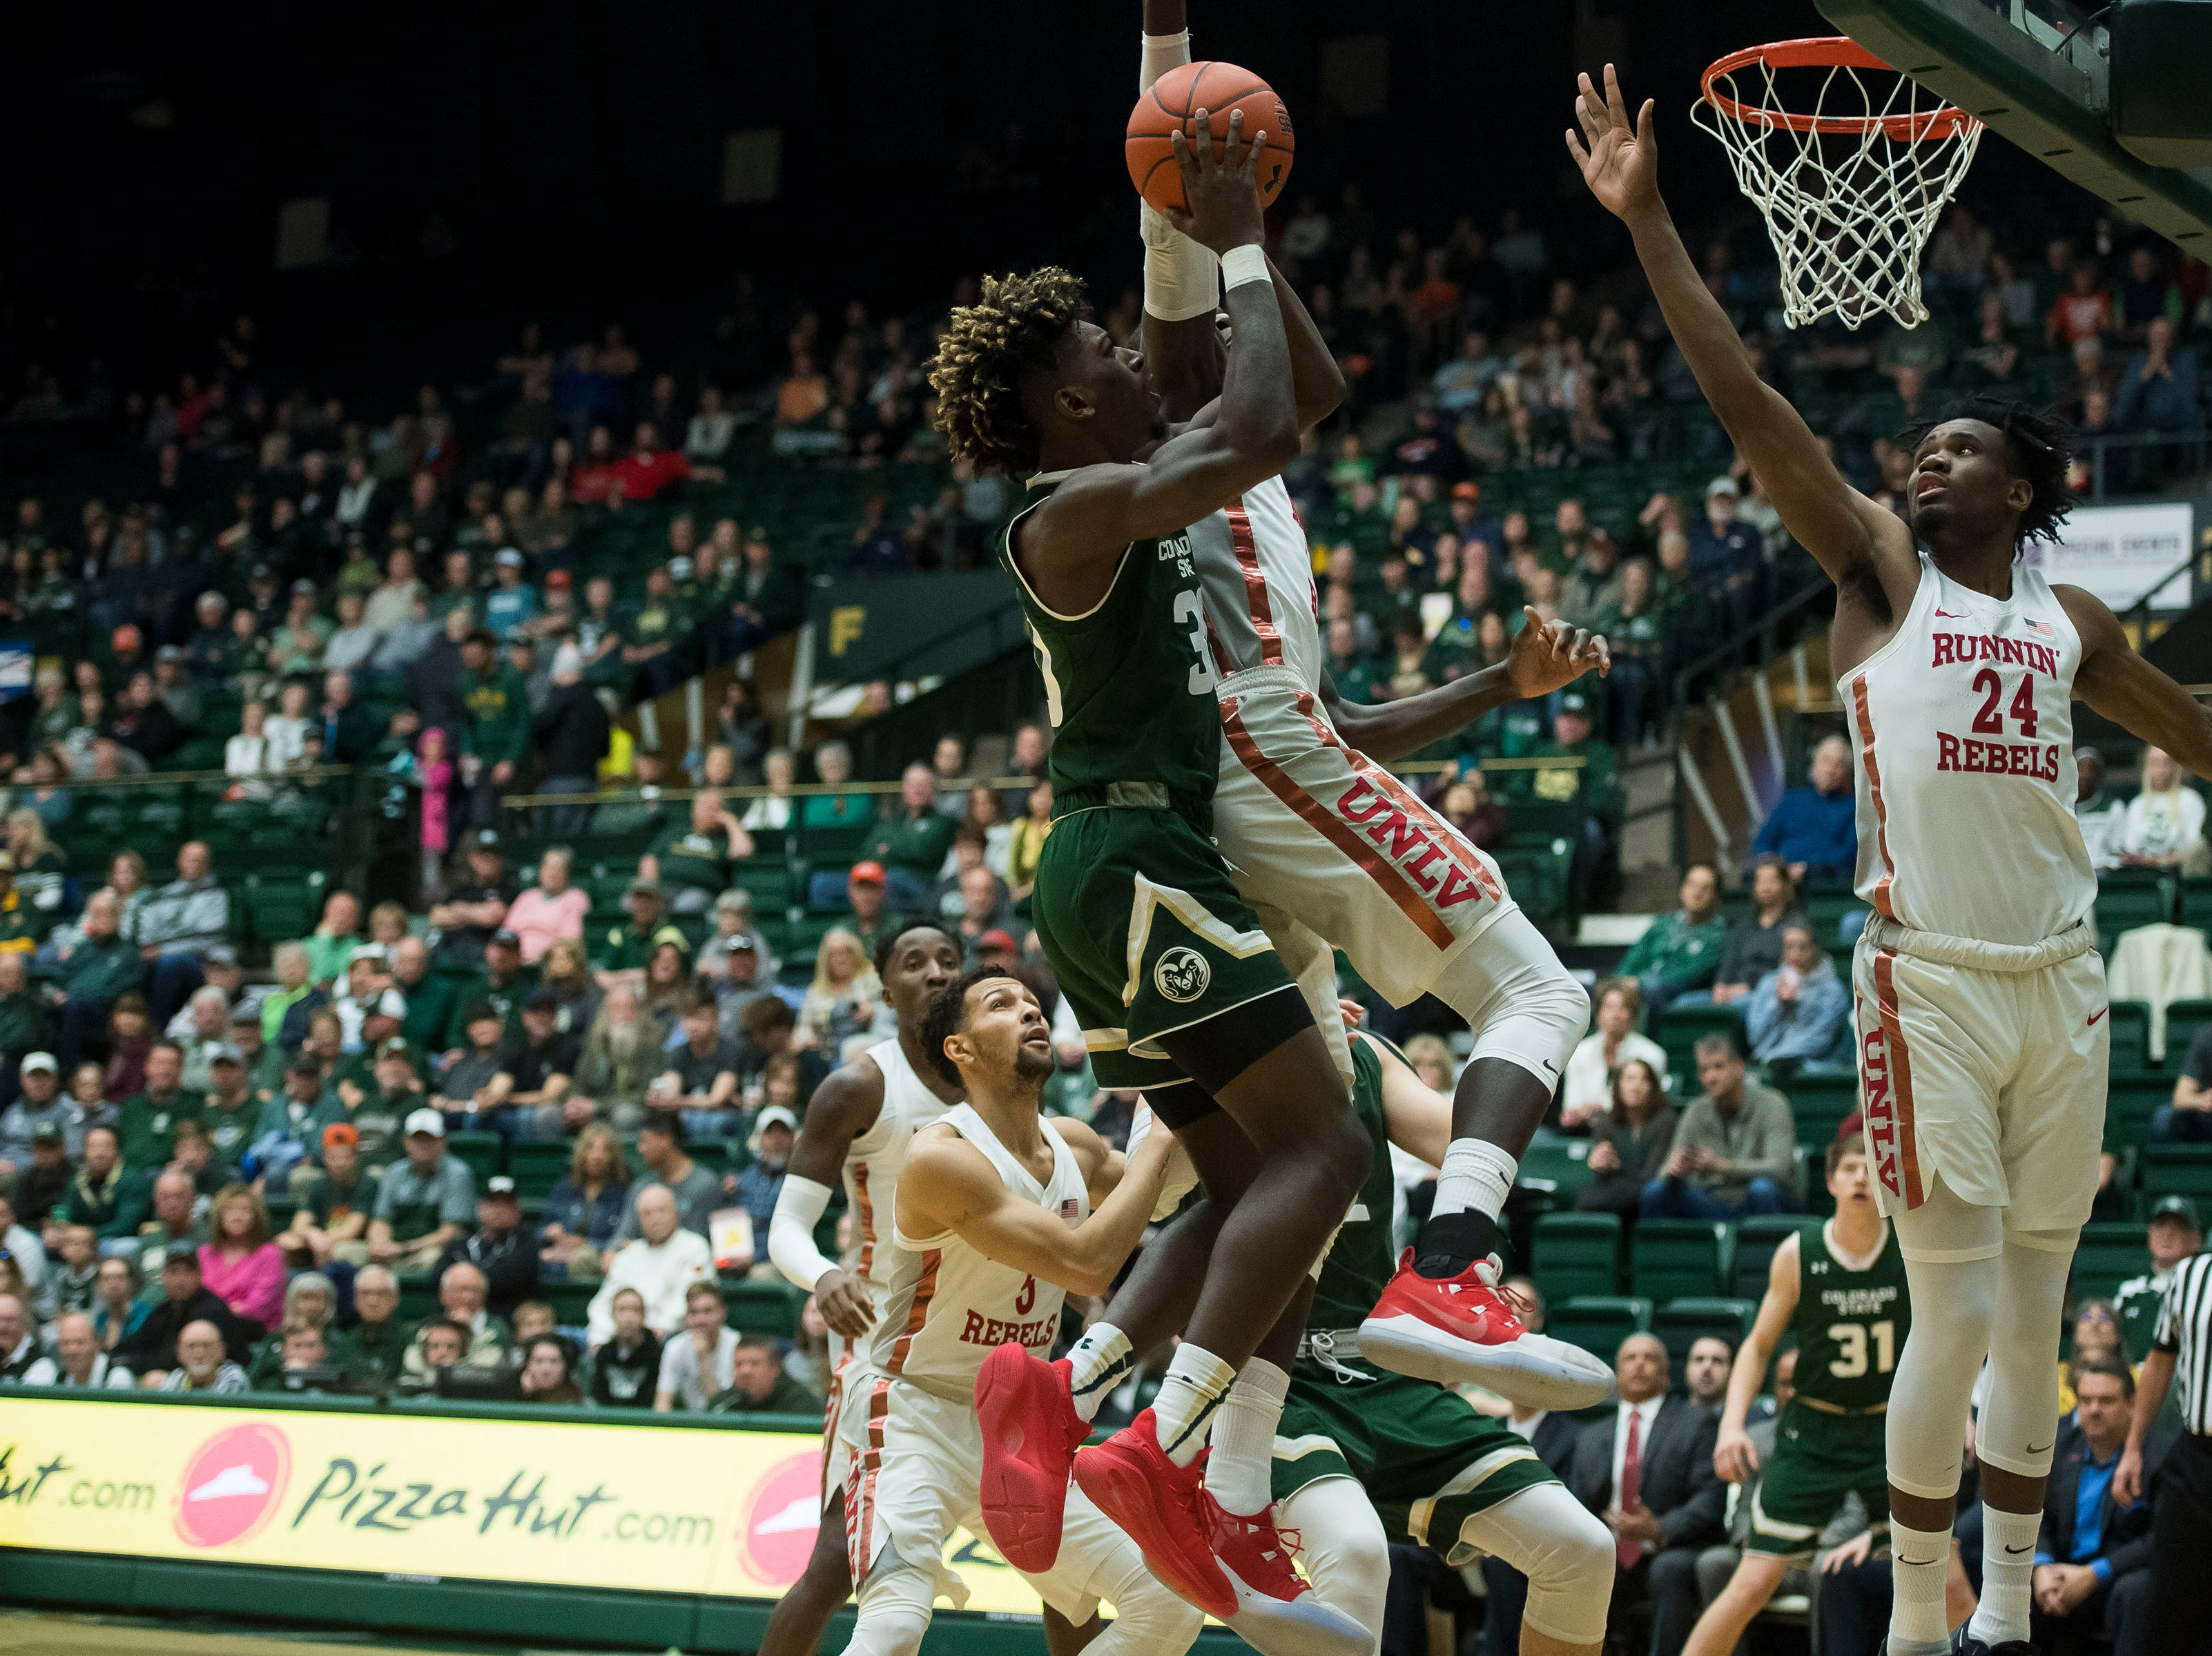 Colorado State University junior guard Kris Martin (30) attempts a shot against University of Nevada Las Vegas freshman forward Joel Ntambwe (24) on Saturday, March 9, 2019, at Moby Arena in Fort Collins, Colo.